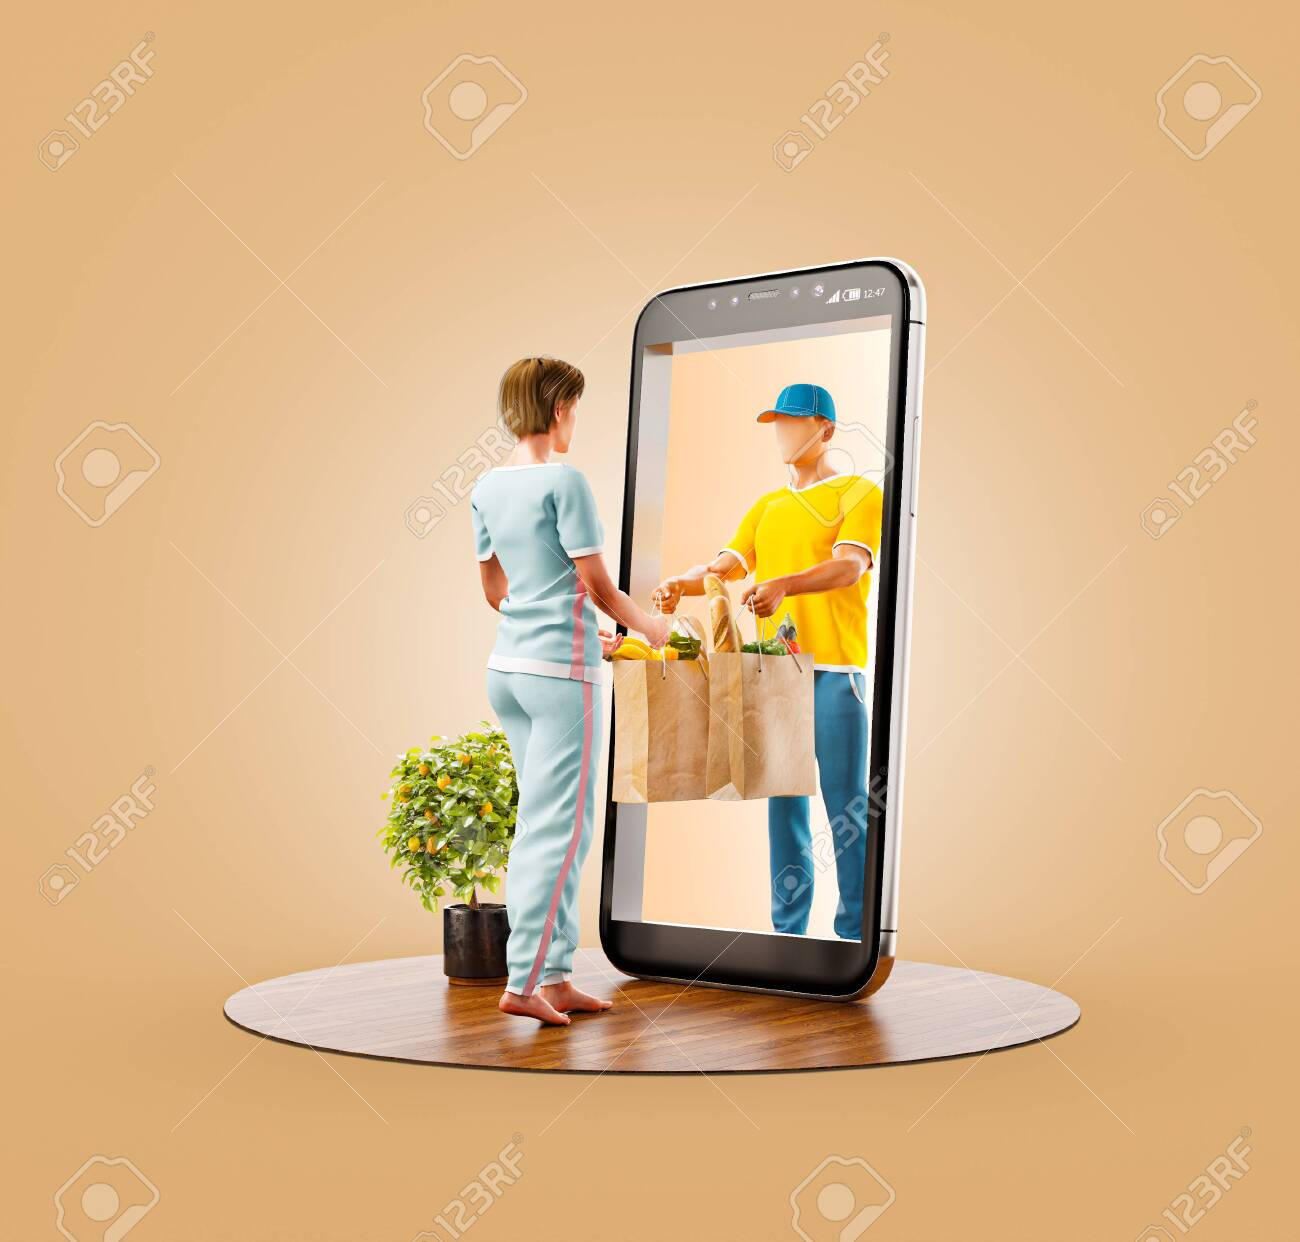 Unusual 3d illustration of a Young woman receiving order from courier. Food delivery service smart phone application. Smartphone apps concept. - 129882260